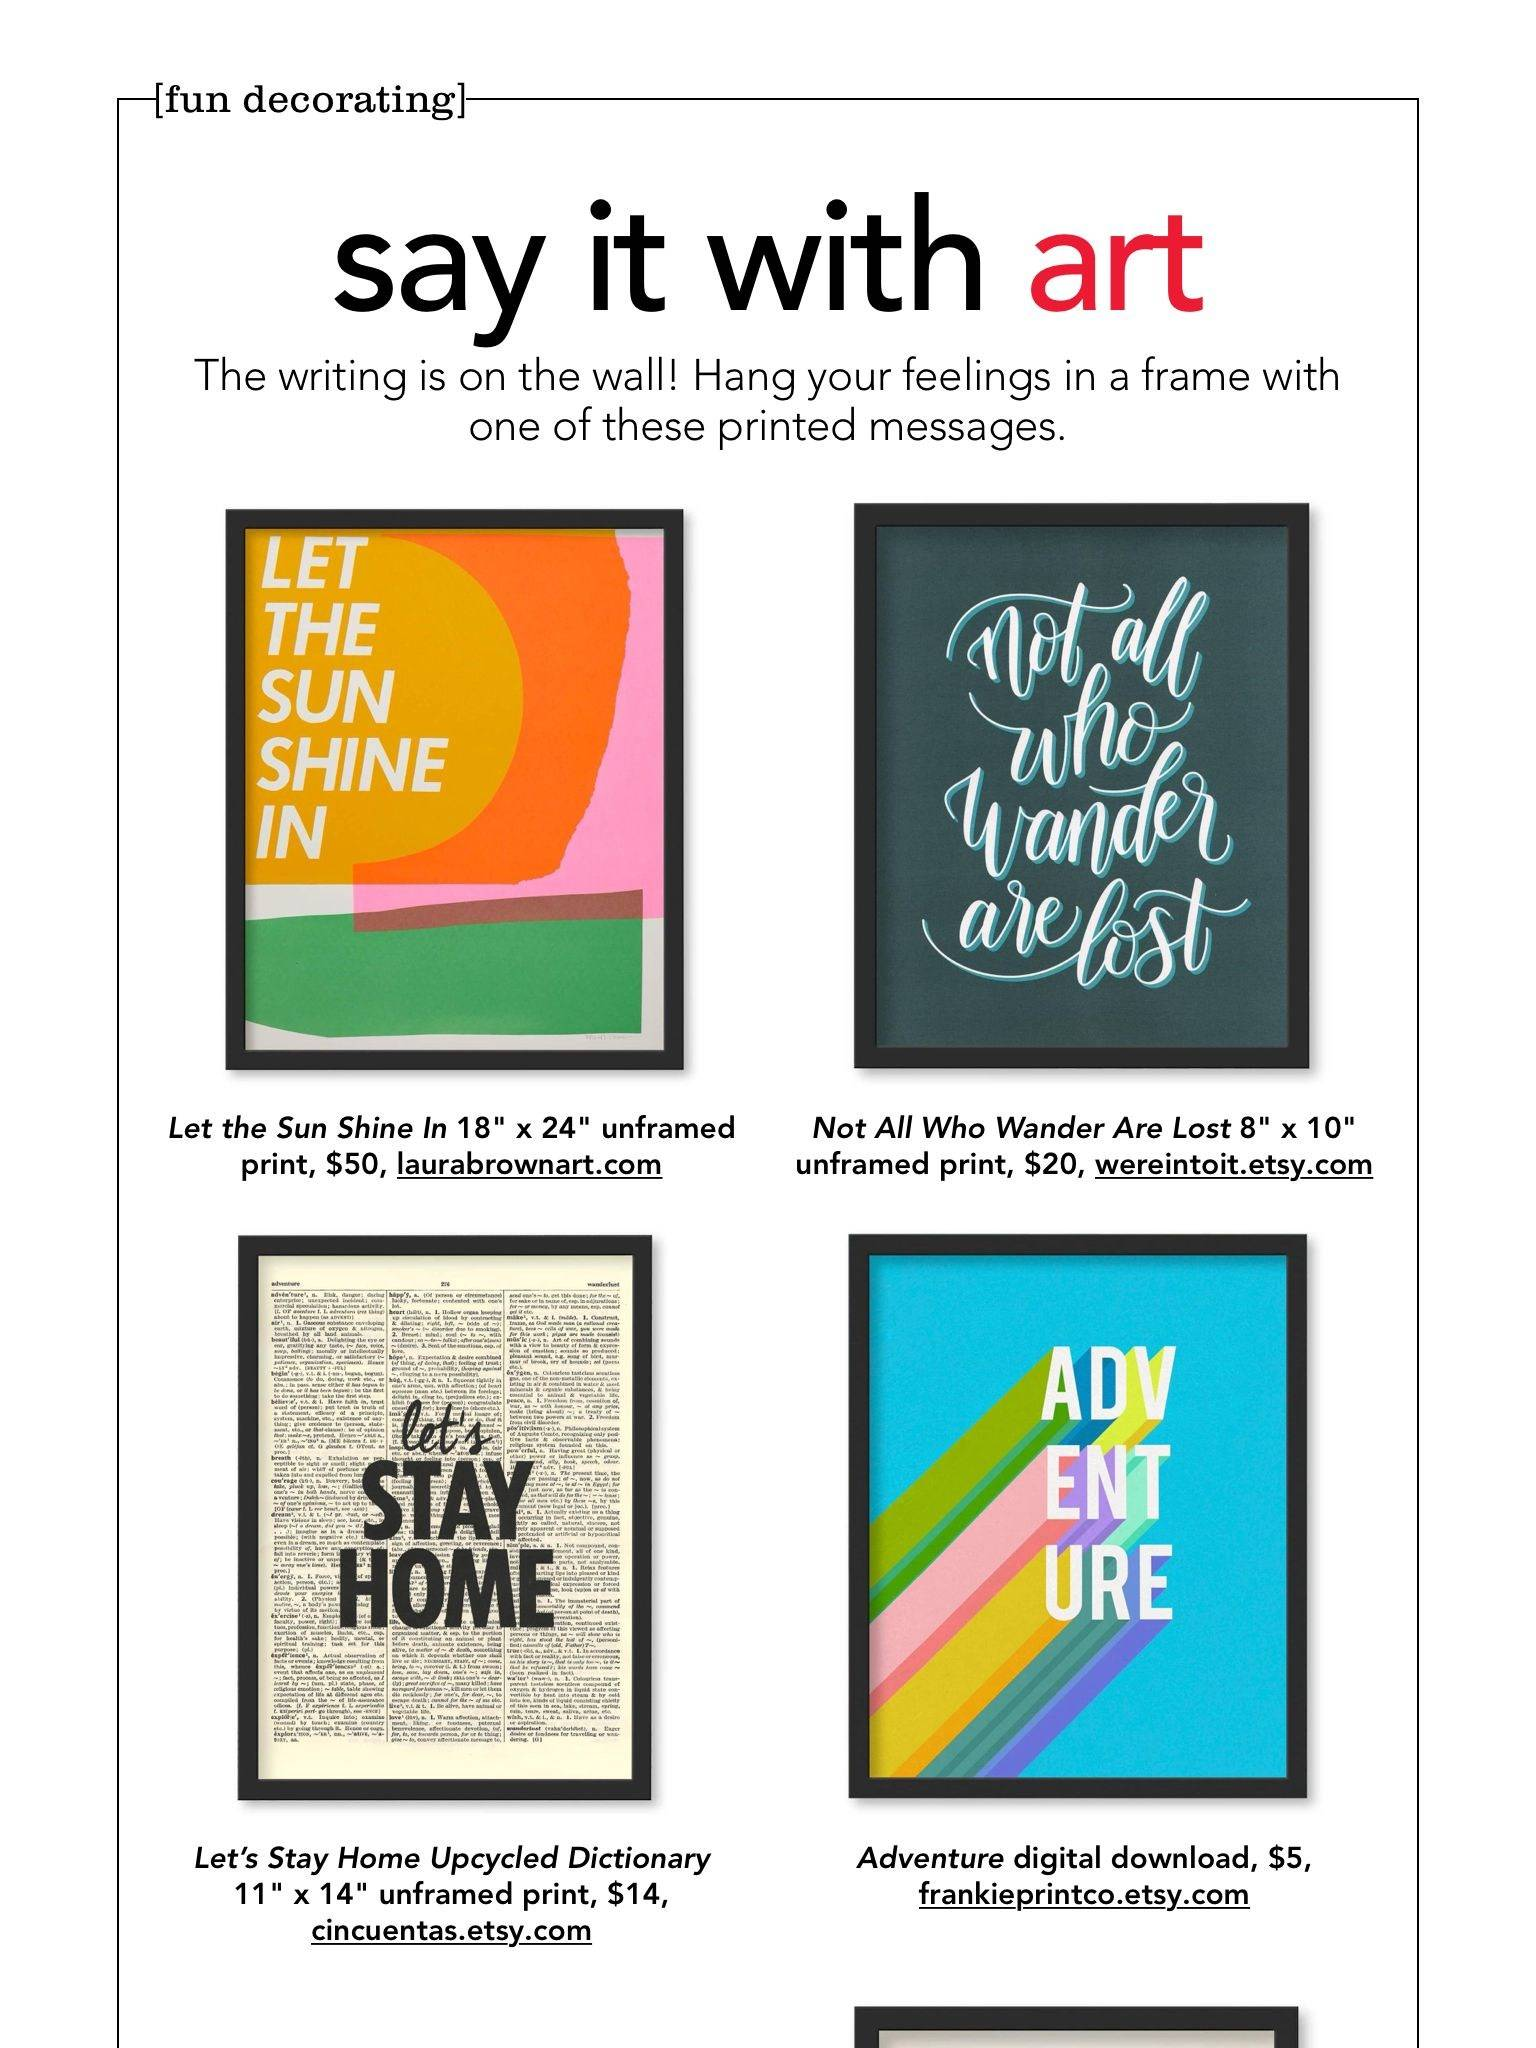 hgtv magazine subscription say it with artquot from hgtv magazine november 2018 read it on the of hgtv magazine subscription